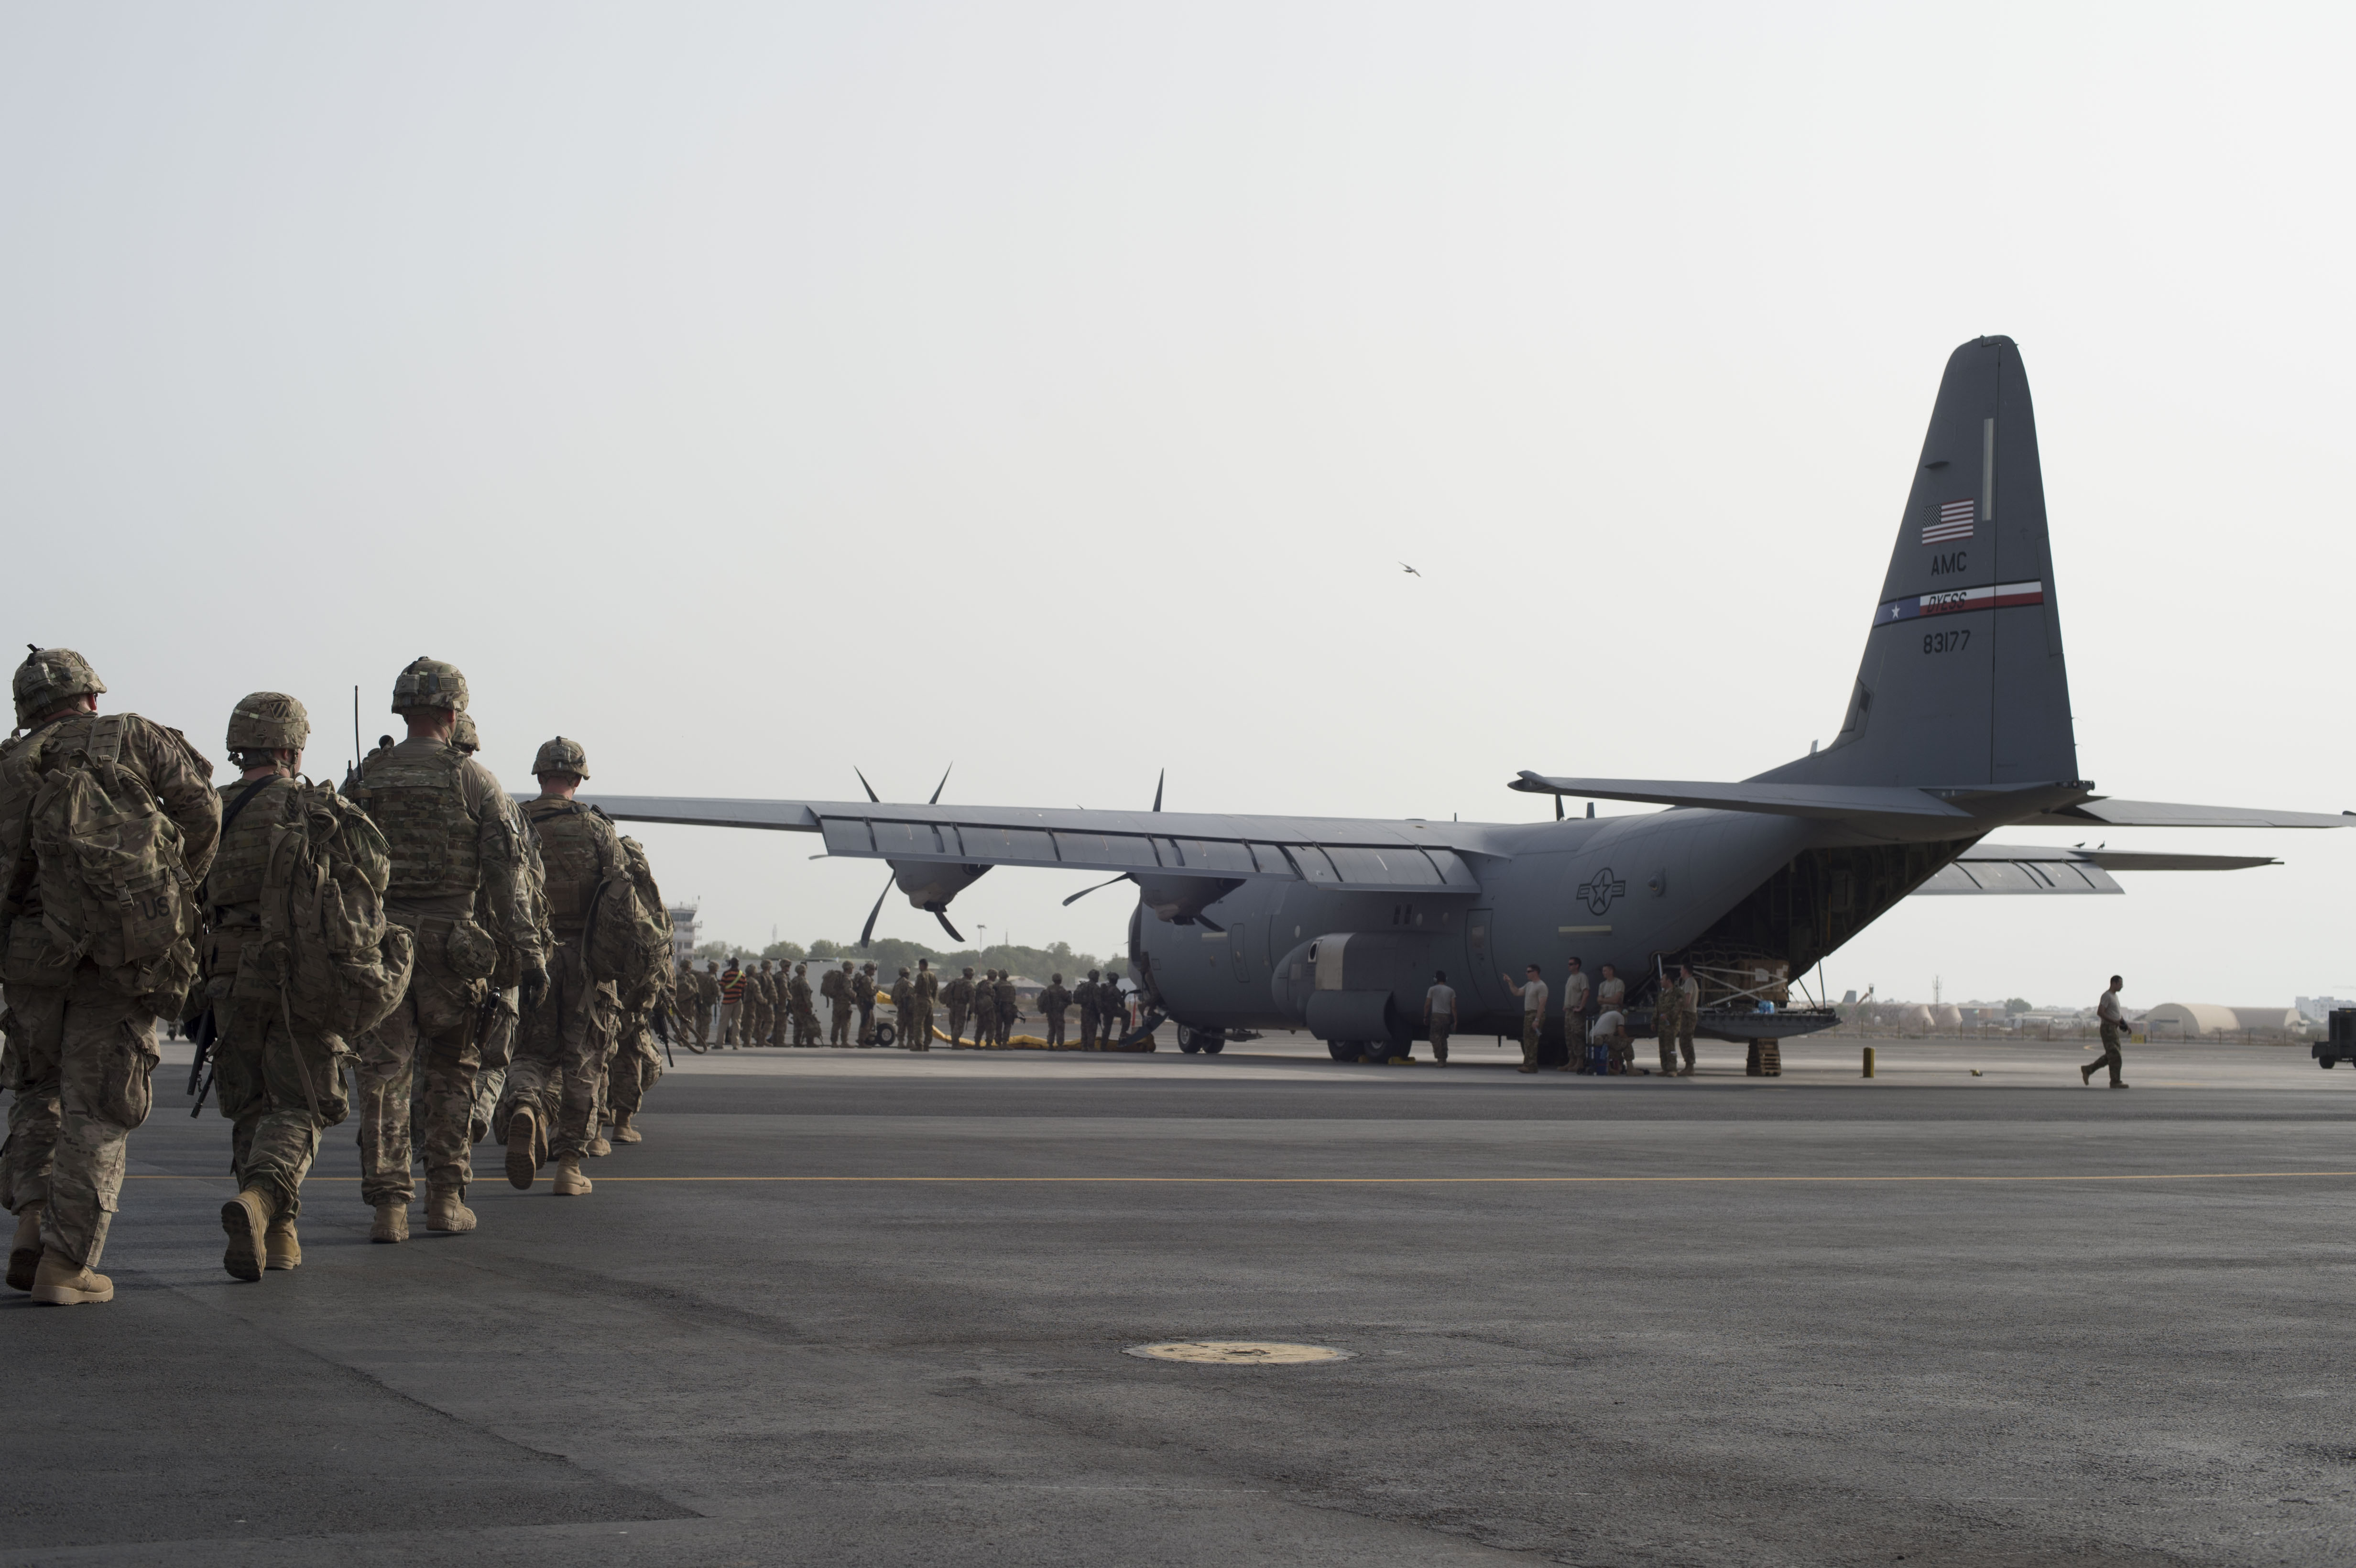 Tons of cargo and passengers are loaded on to a U.S. Air Force C-130J Hercules during an East African Response Force validation exercise May 27, 2016, at Camp Lemonnier, Djibouti. The mission of the EARF is to provide rapidly deployable assets at a moment's notice to reinforce embassies within the Combined Joint Task Force-Horn of Africa area of responsibility. (U.S. Air Force photo by Staff Sgt. Eric Summers Jr.)